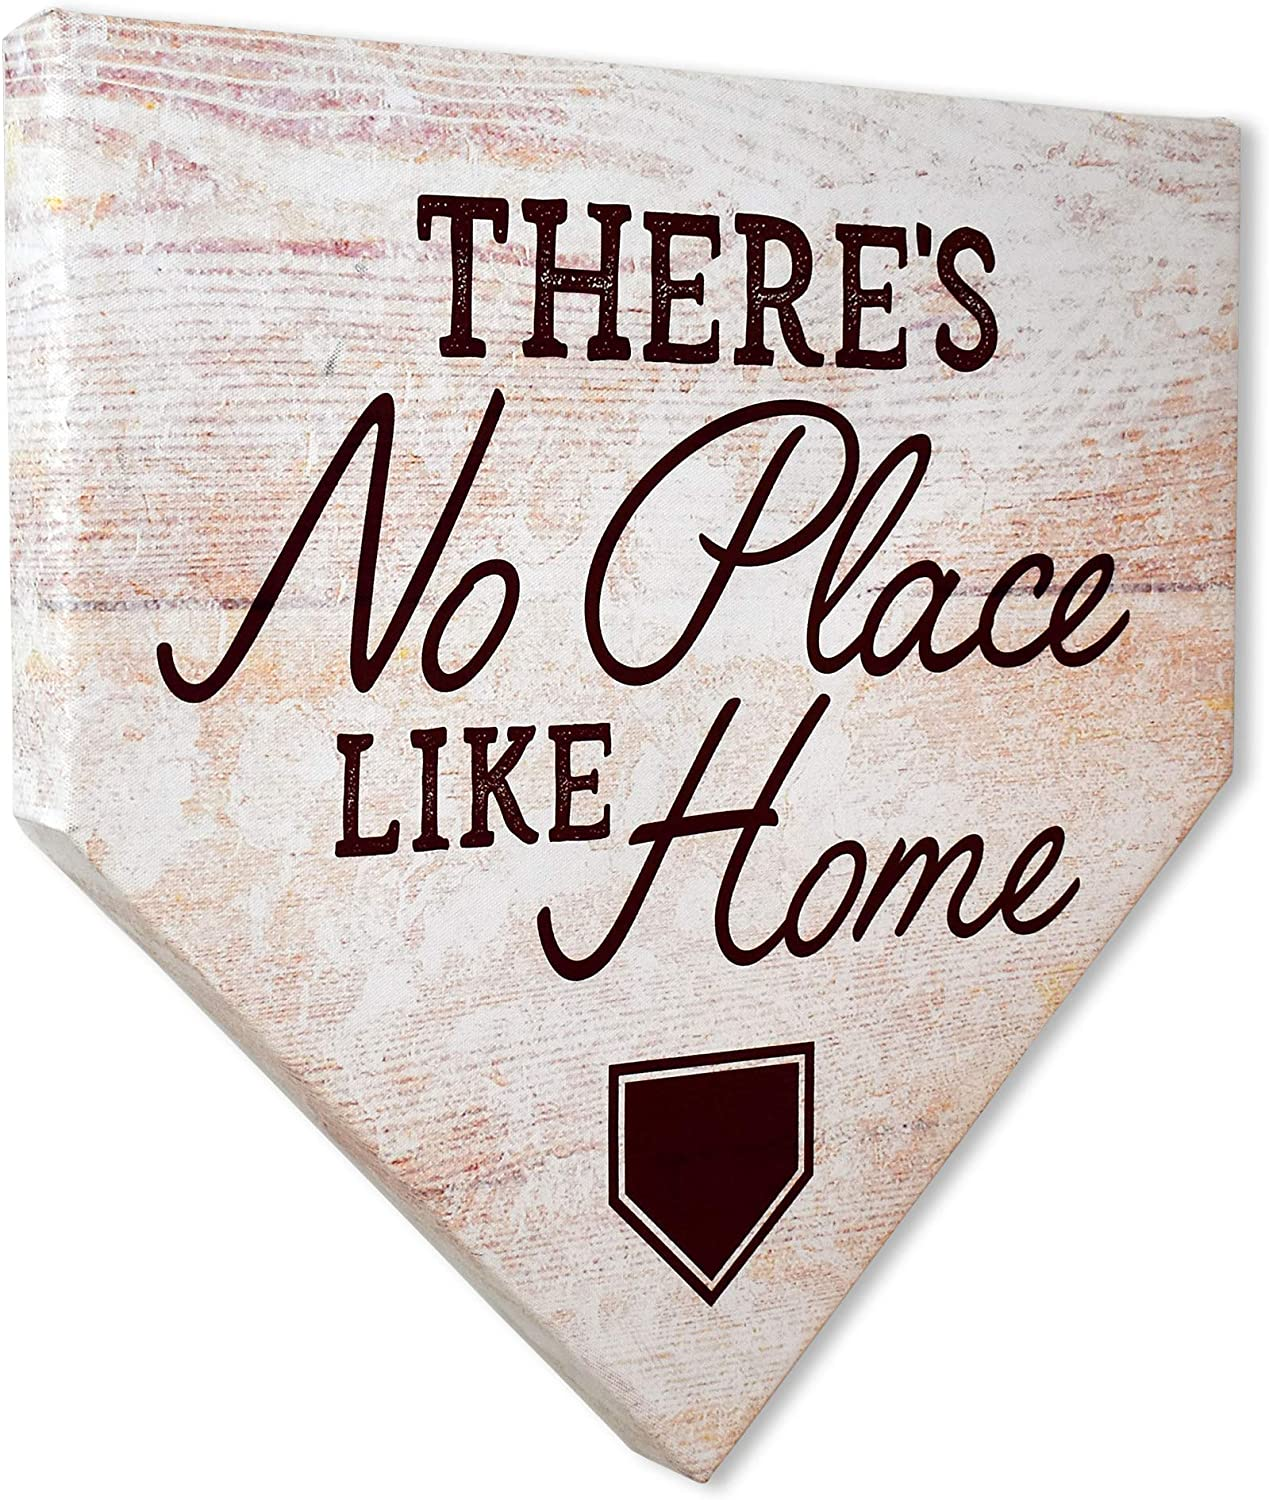 "COLLECTIBLE CANVAS There's No Place Like Home Home Plates, Sports, Wall Art for Bedroom, Nursery, and Other Parts of The House Or Dorm, Wall Decorations with Baseball Or Sports Theme 12"" x 12"" x 1.5"""